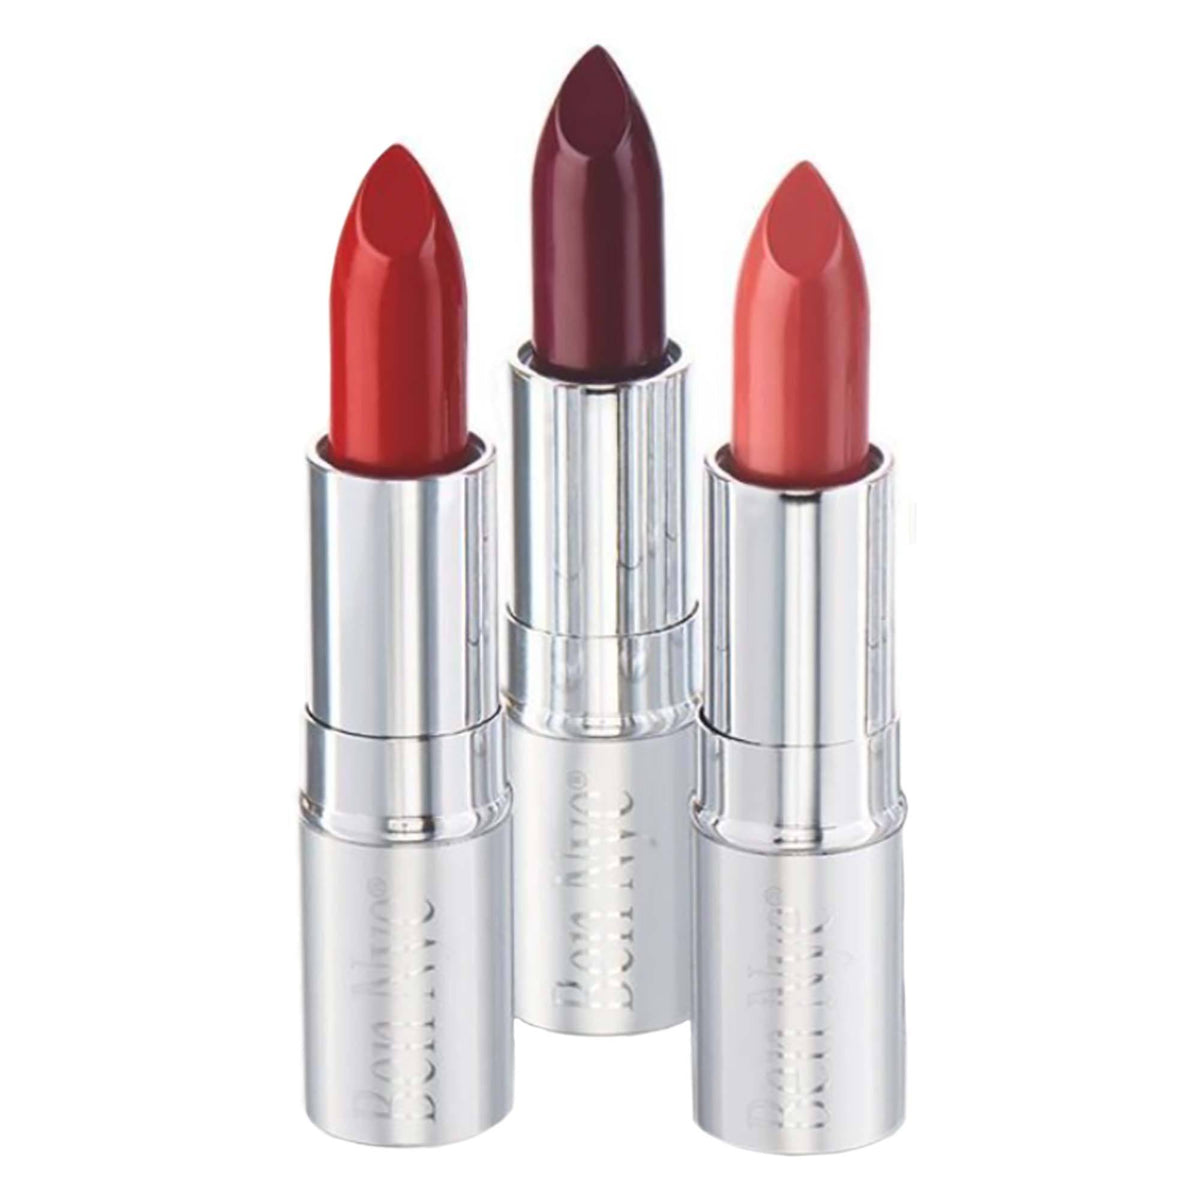 Ben Nye Lustrous Pro Lipsticks - Red Carpet FX - Professional Makeup